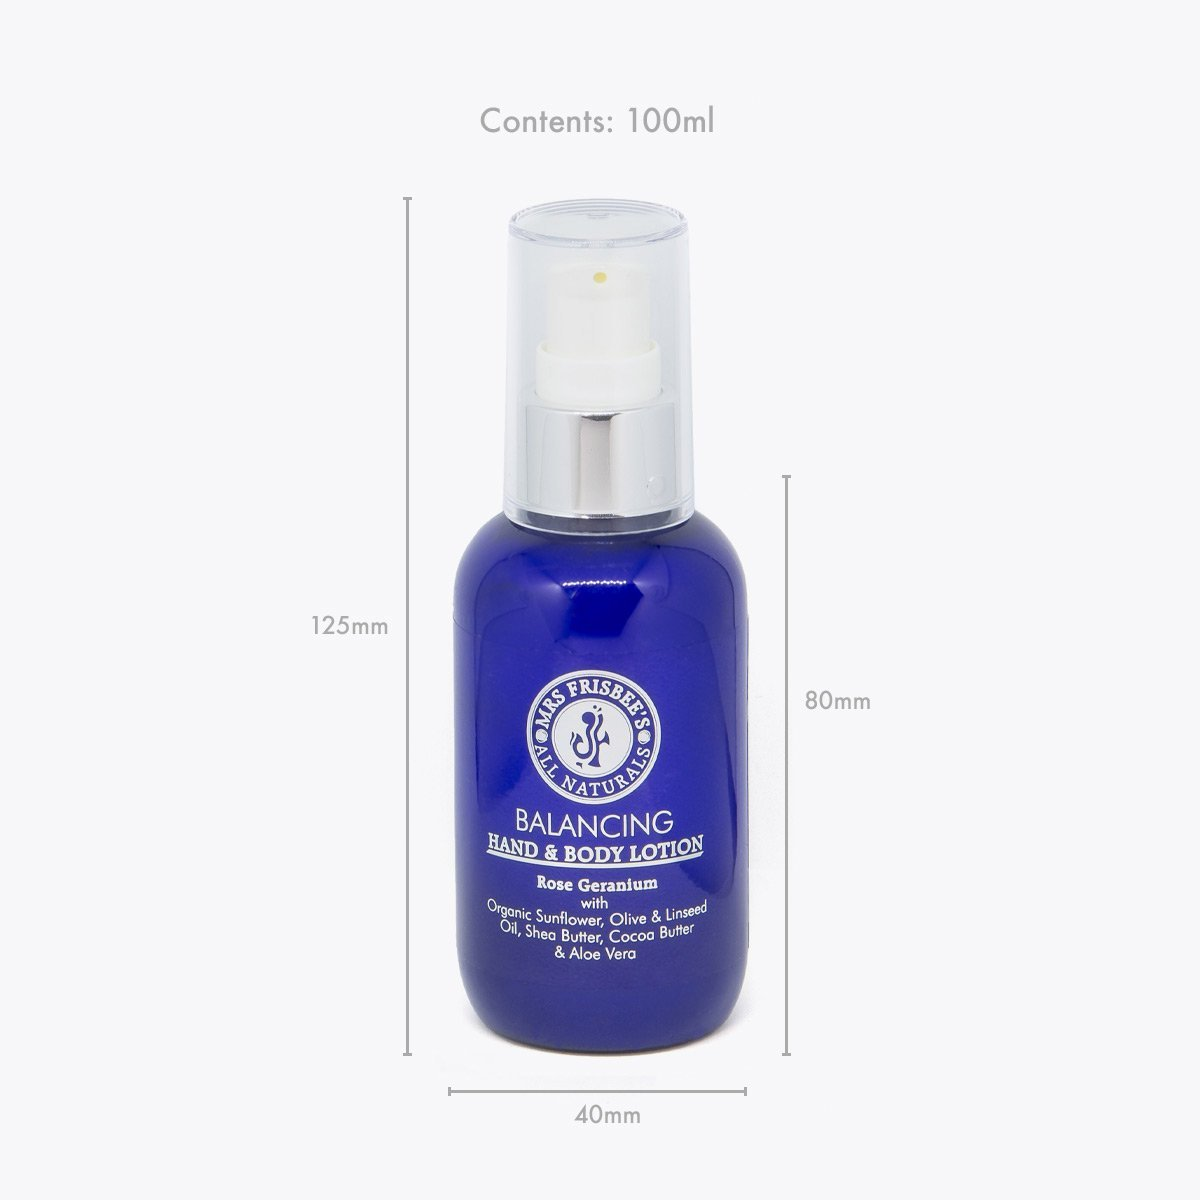 Balancing Hand and Body Lotion 100ml bottle measurements